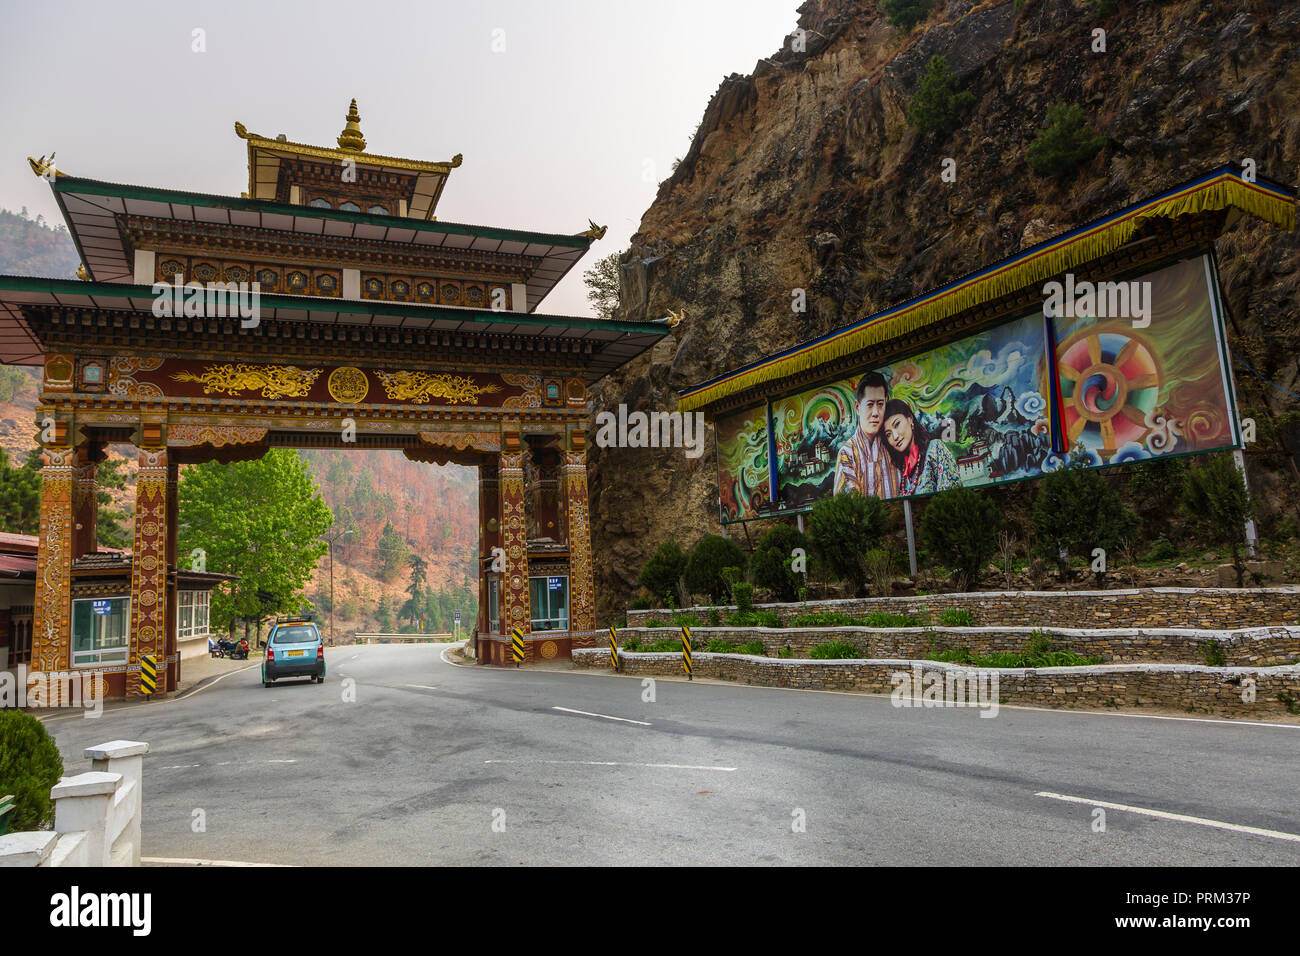 A colourful gate on a highway road in Bhutan - Stock Image